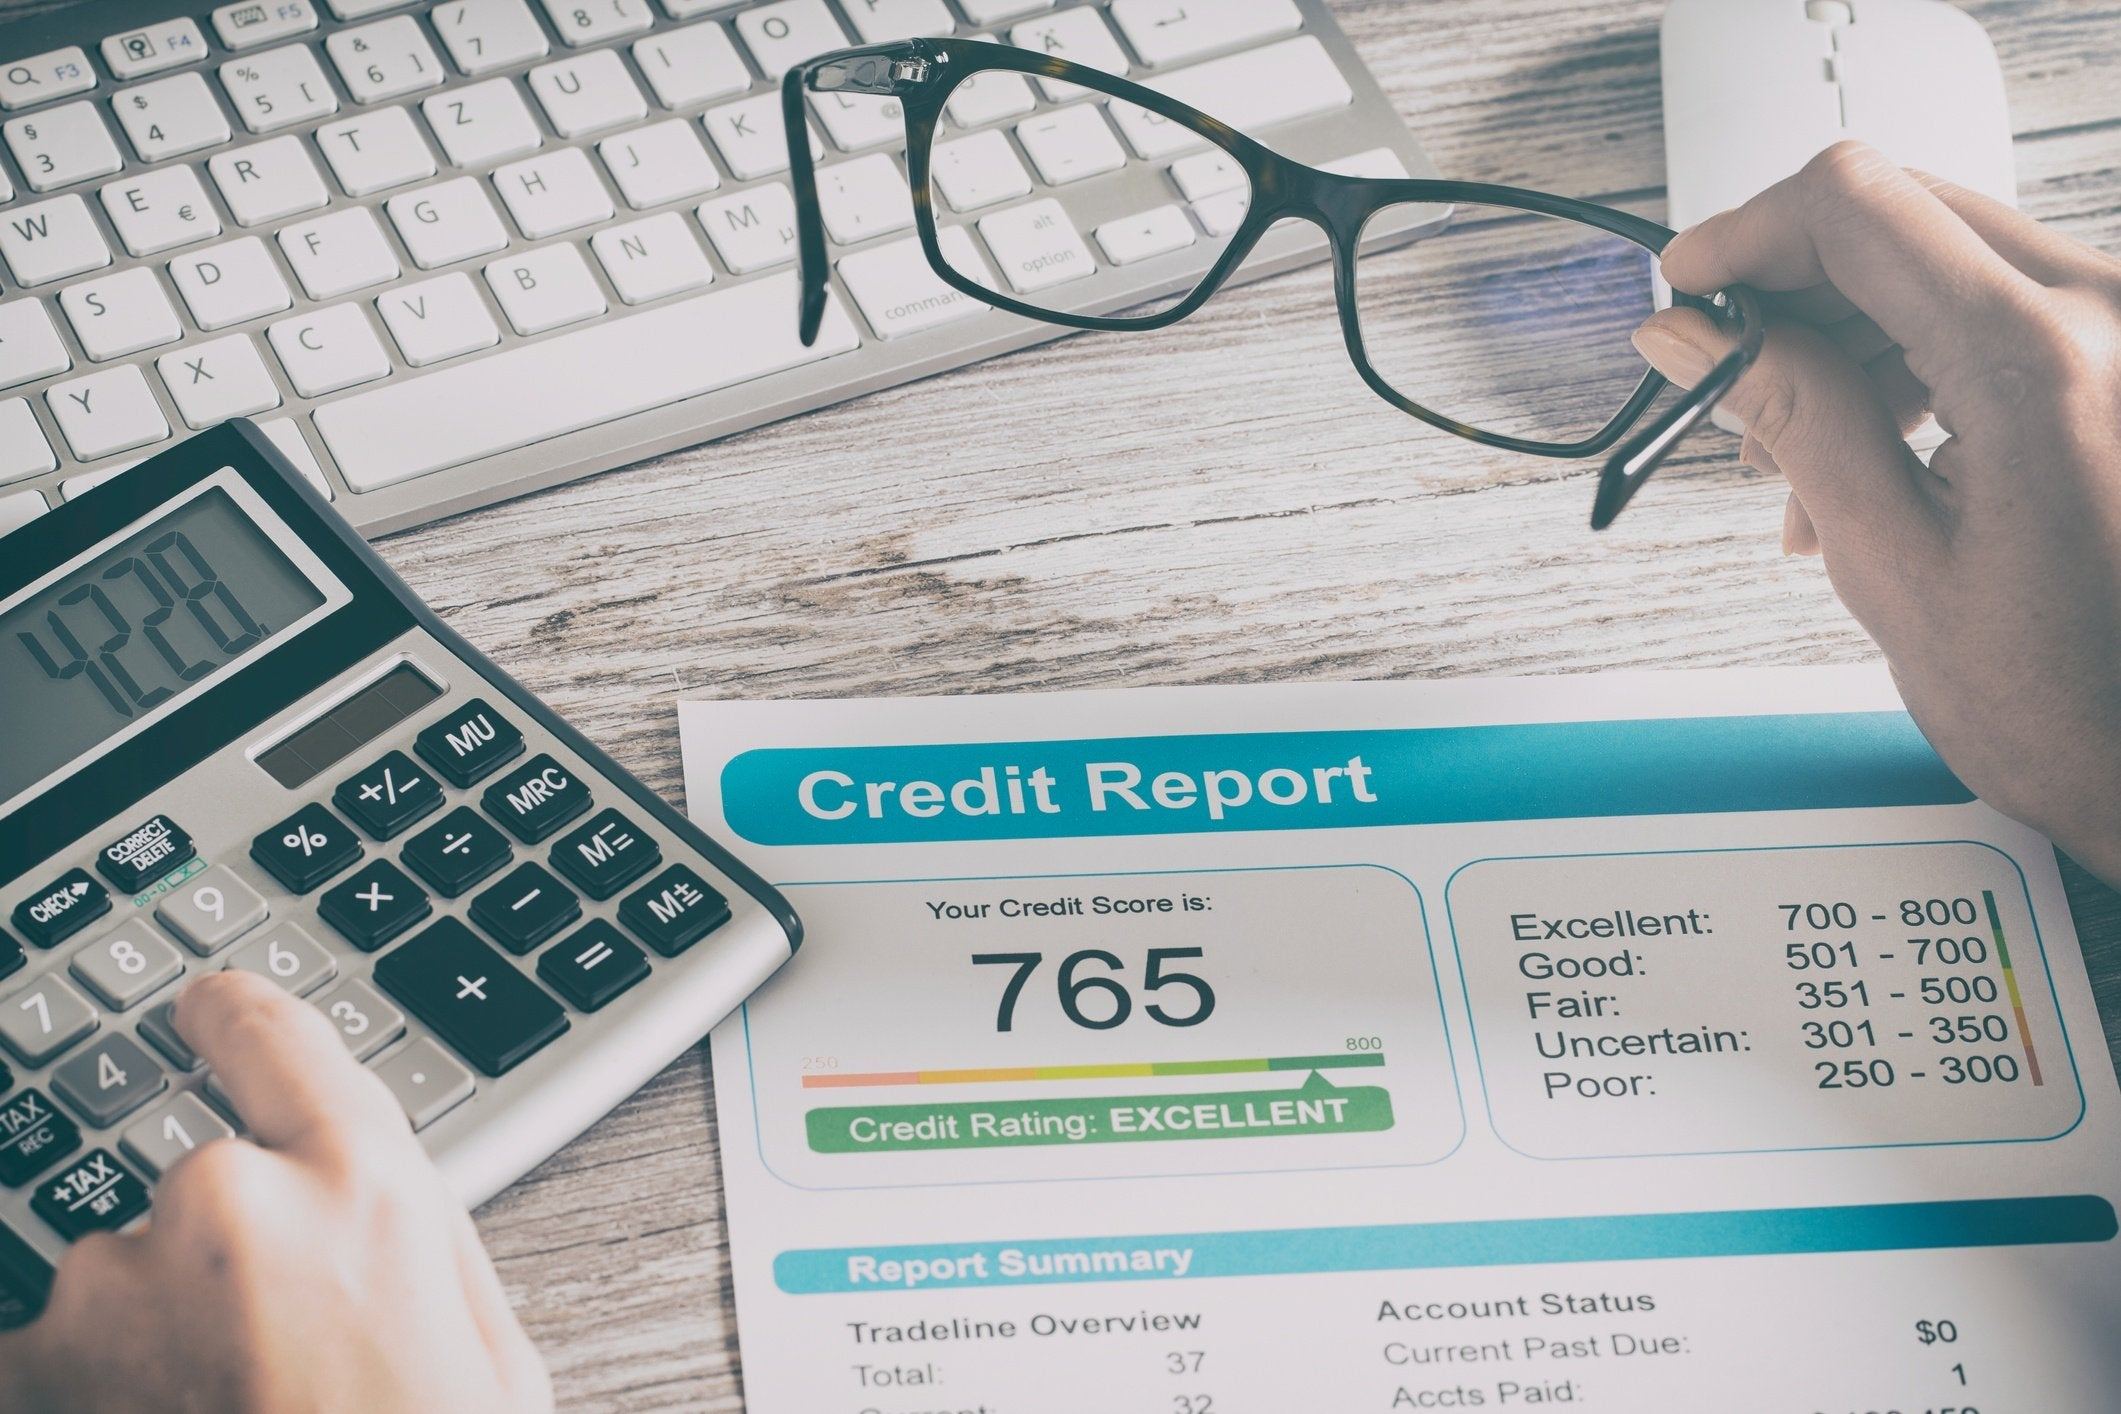 What Credit Score Do I Need For A Chase Credit Card